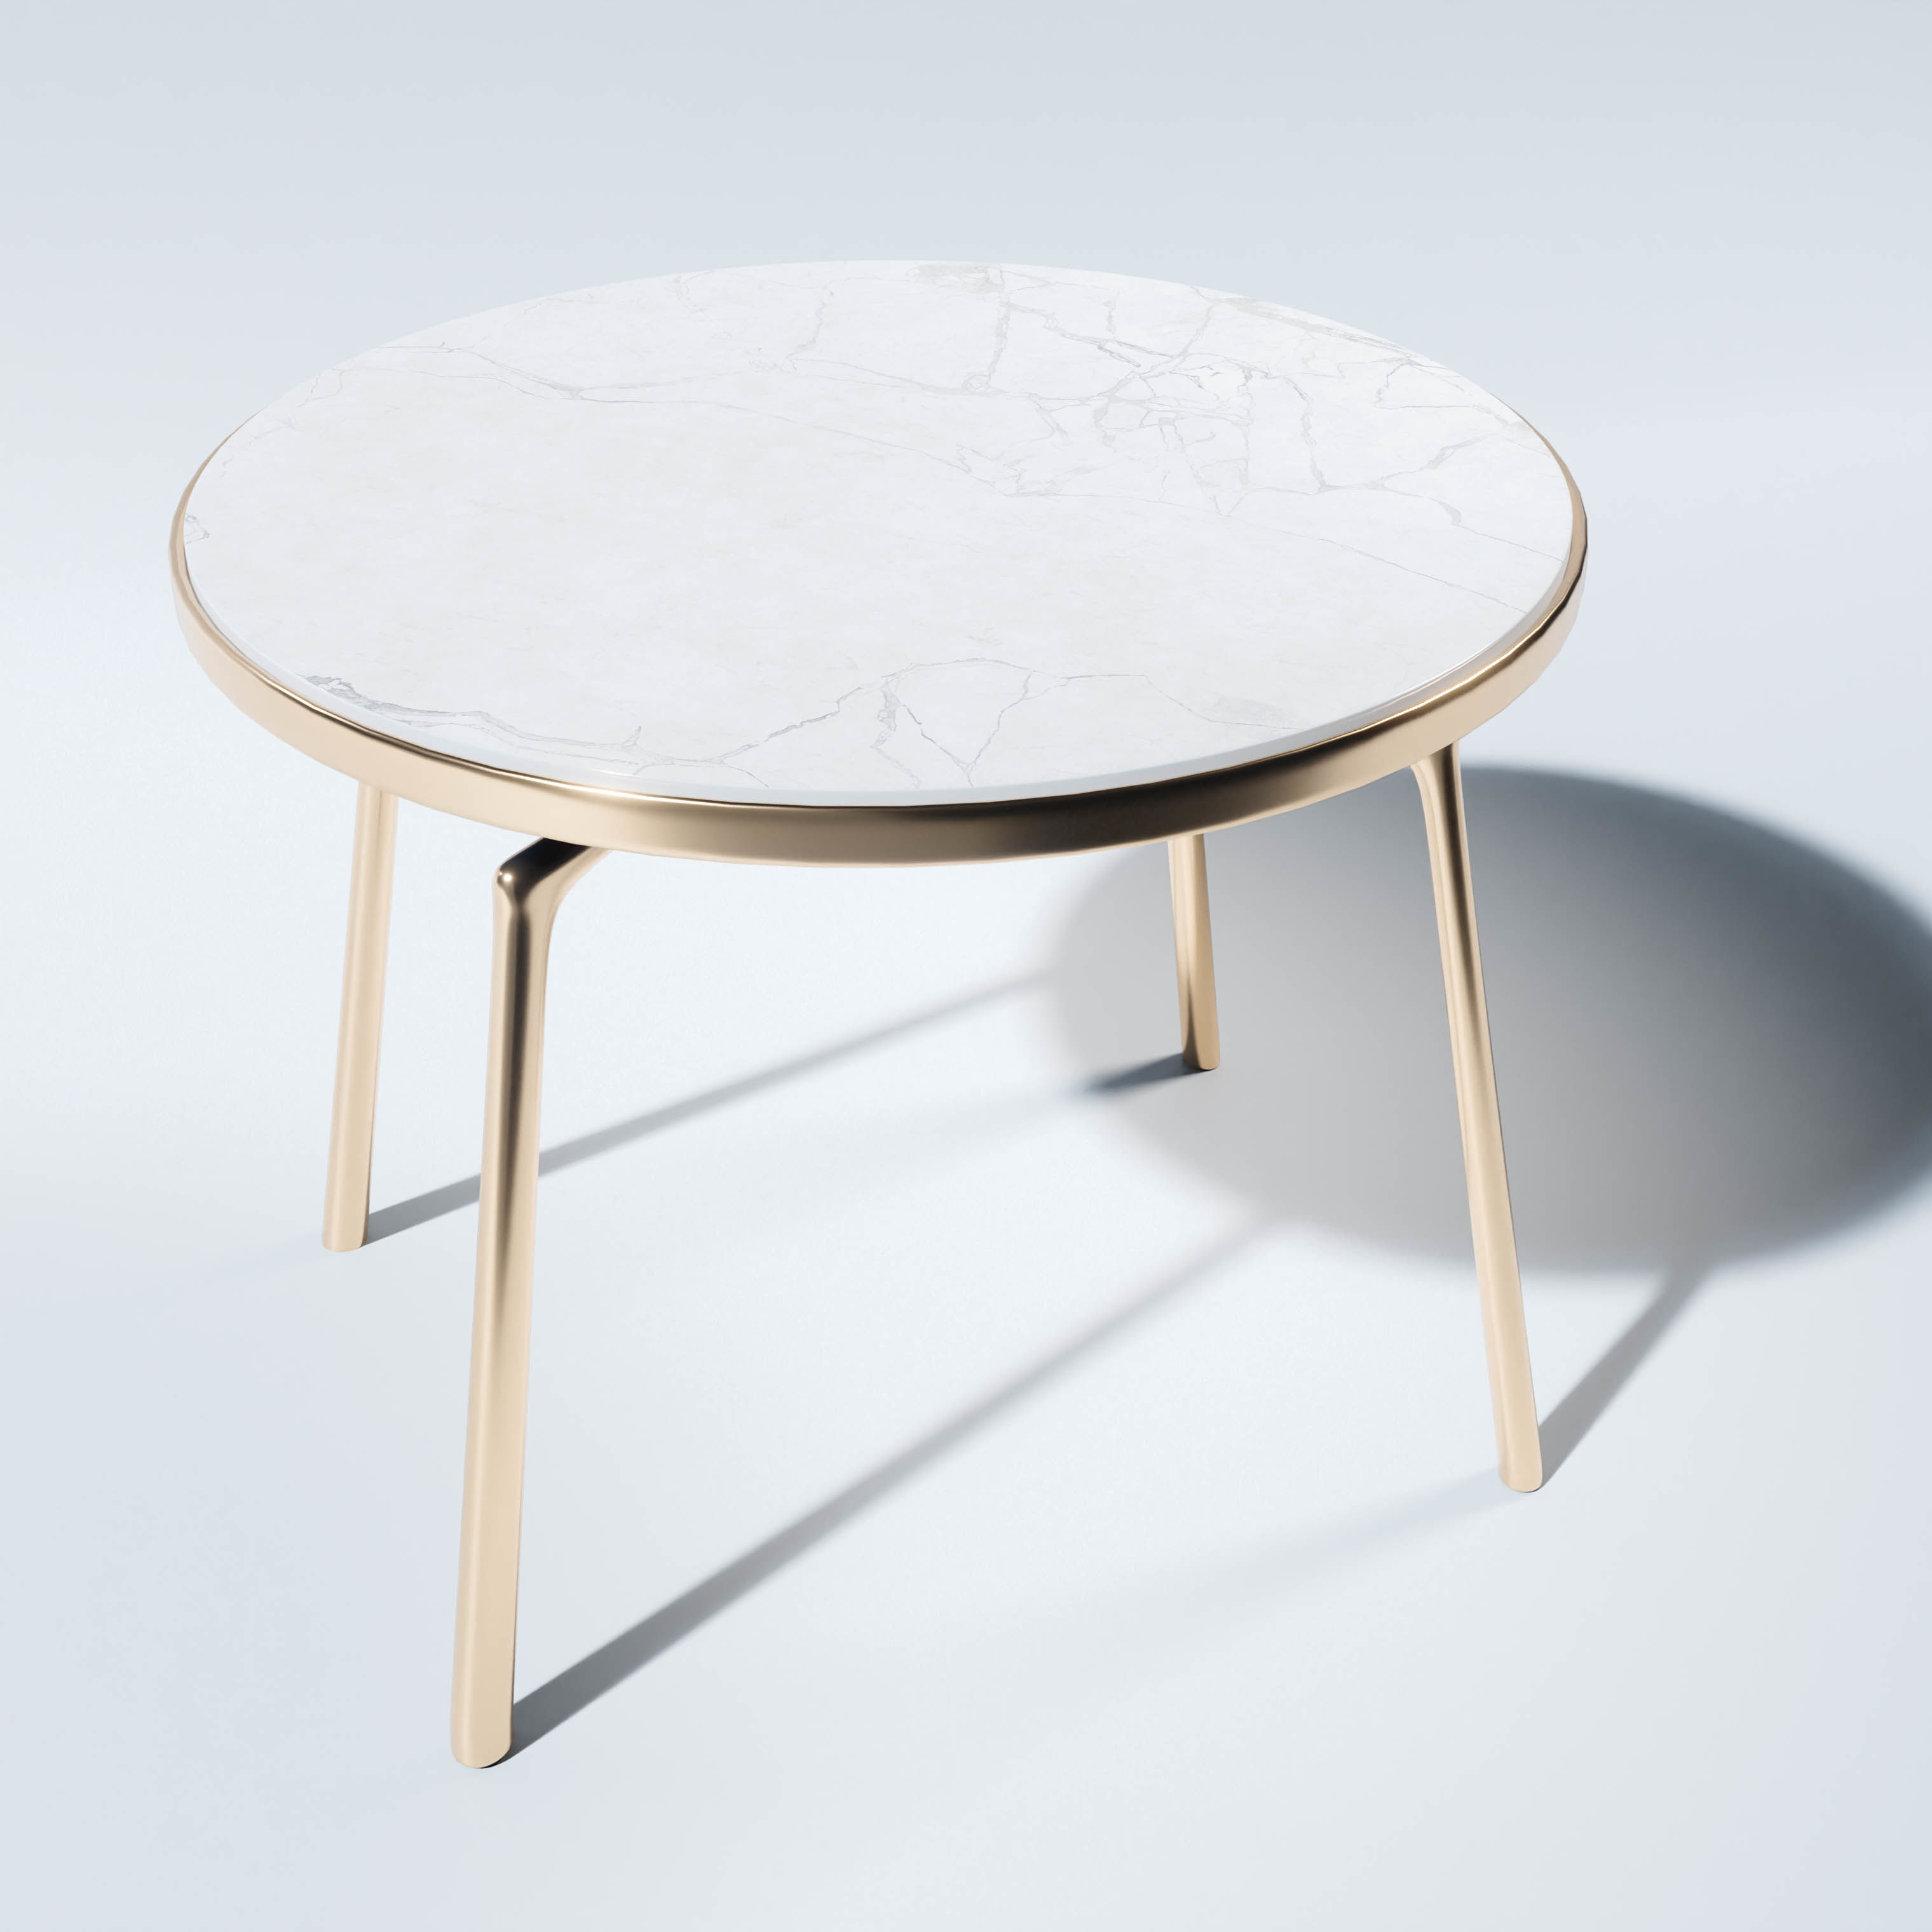 Round Marble Coffee Table With A Golden Base 3d Cgtrader